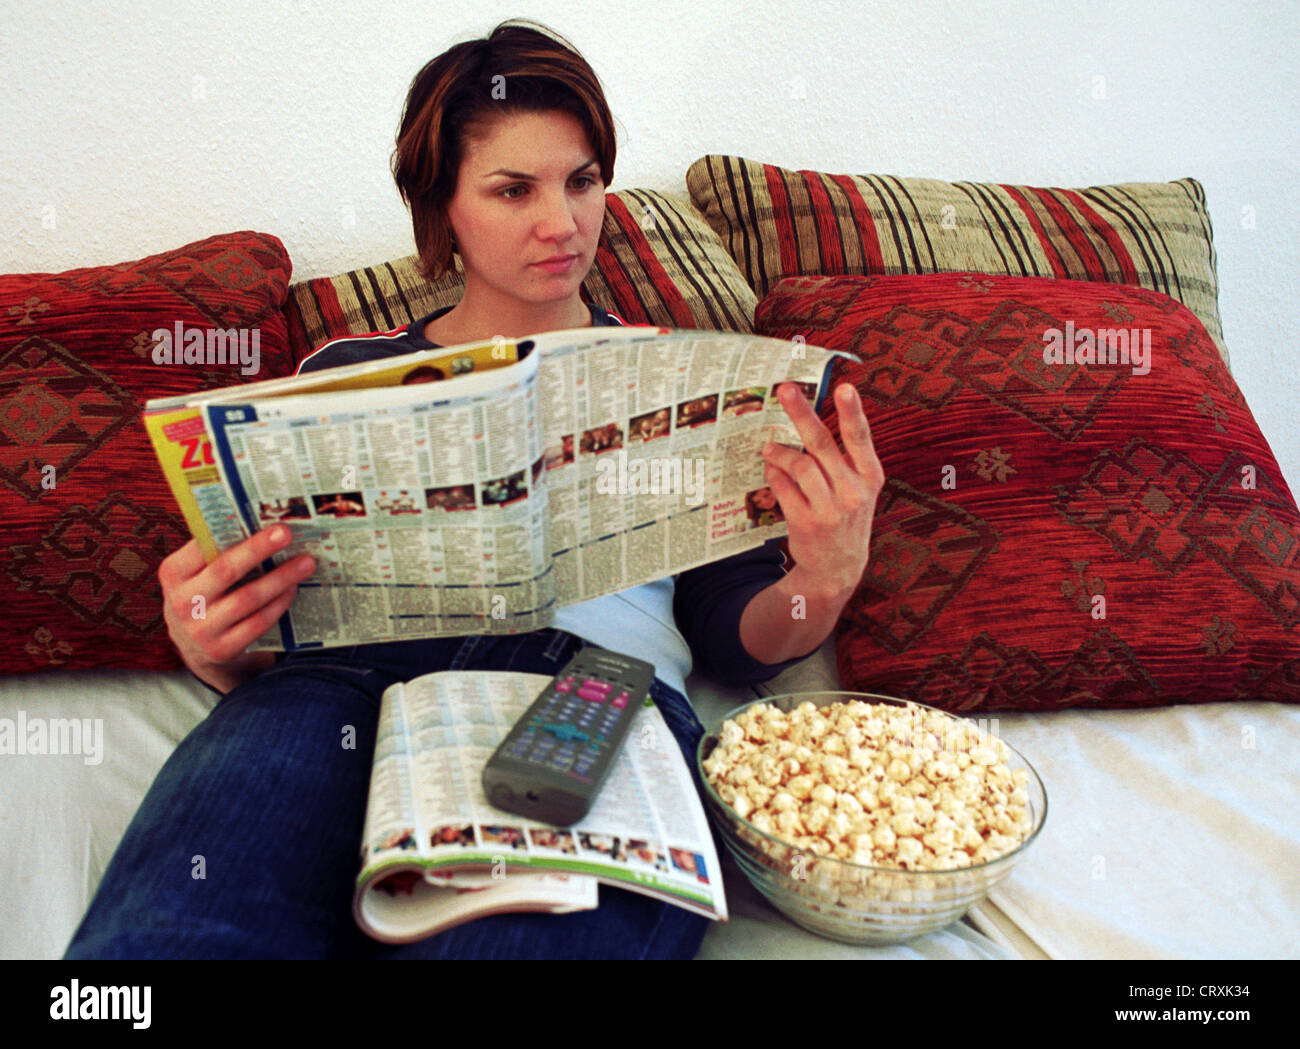 A young woman reading in the TV program - Stock Image